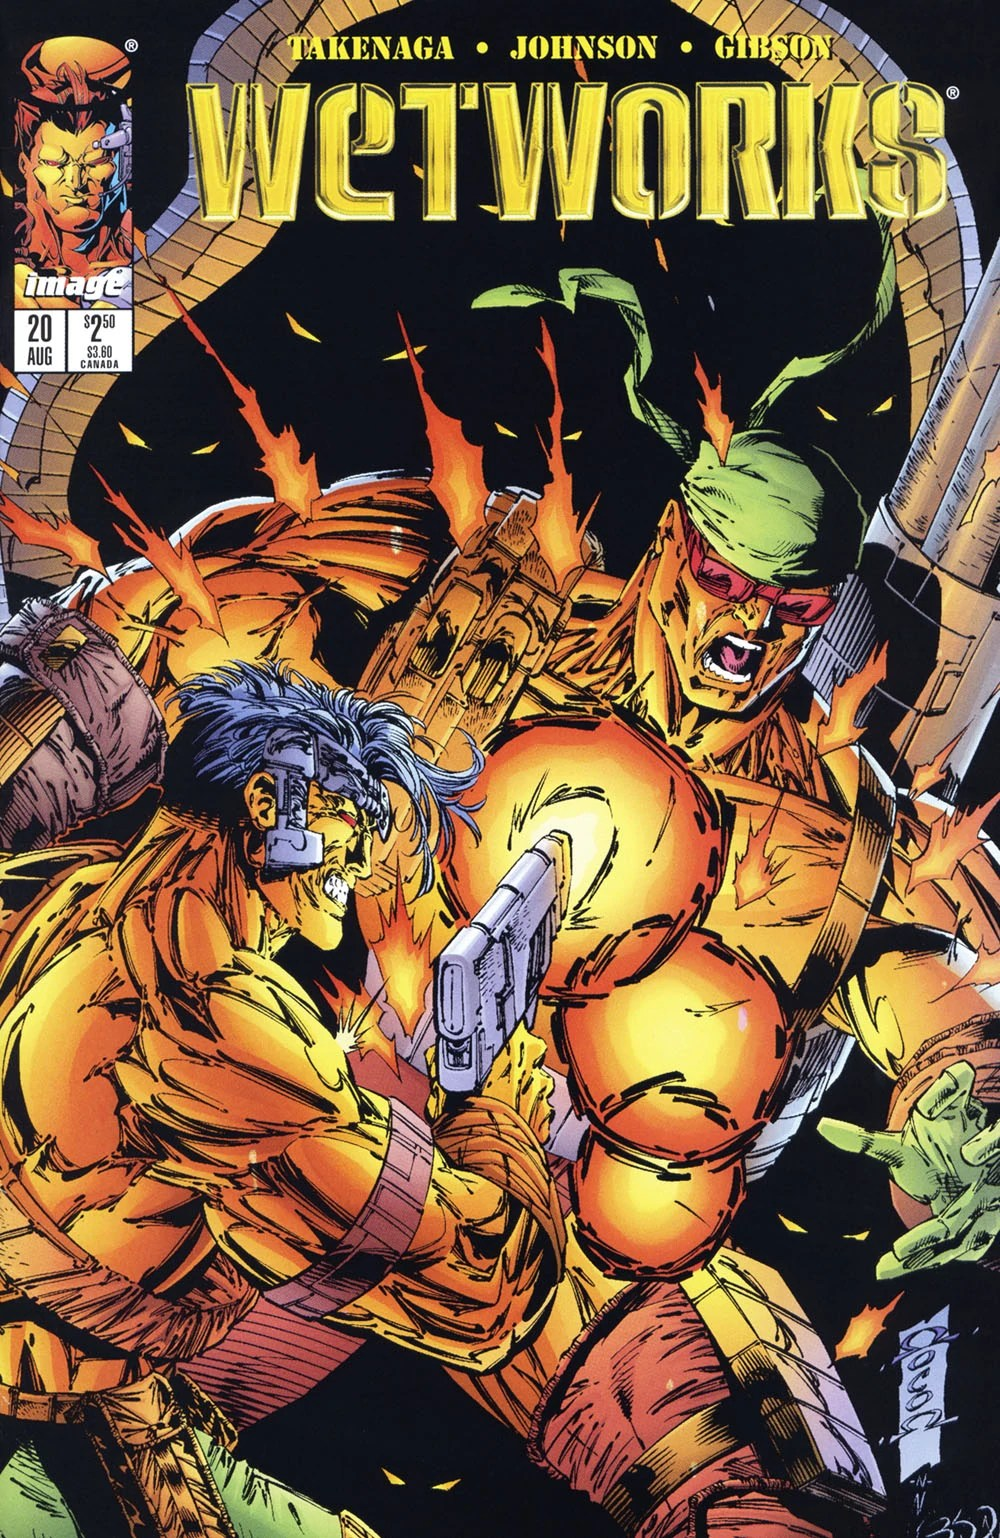 Wetworks Vol 1 20  Image Comics Database  FANDOM powered by Wikia